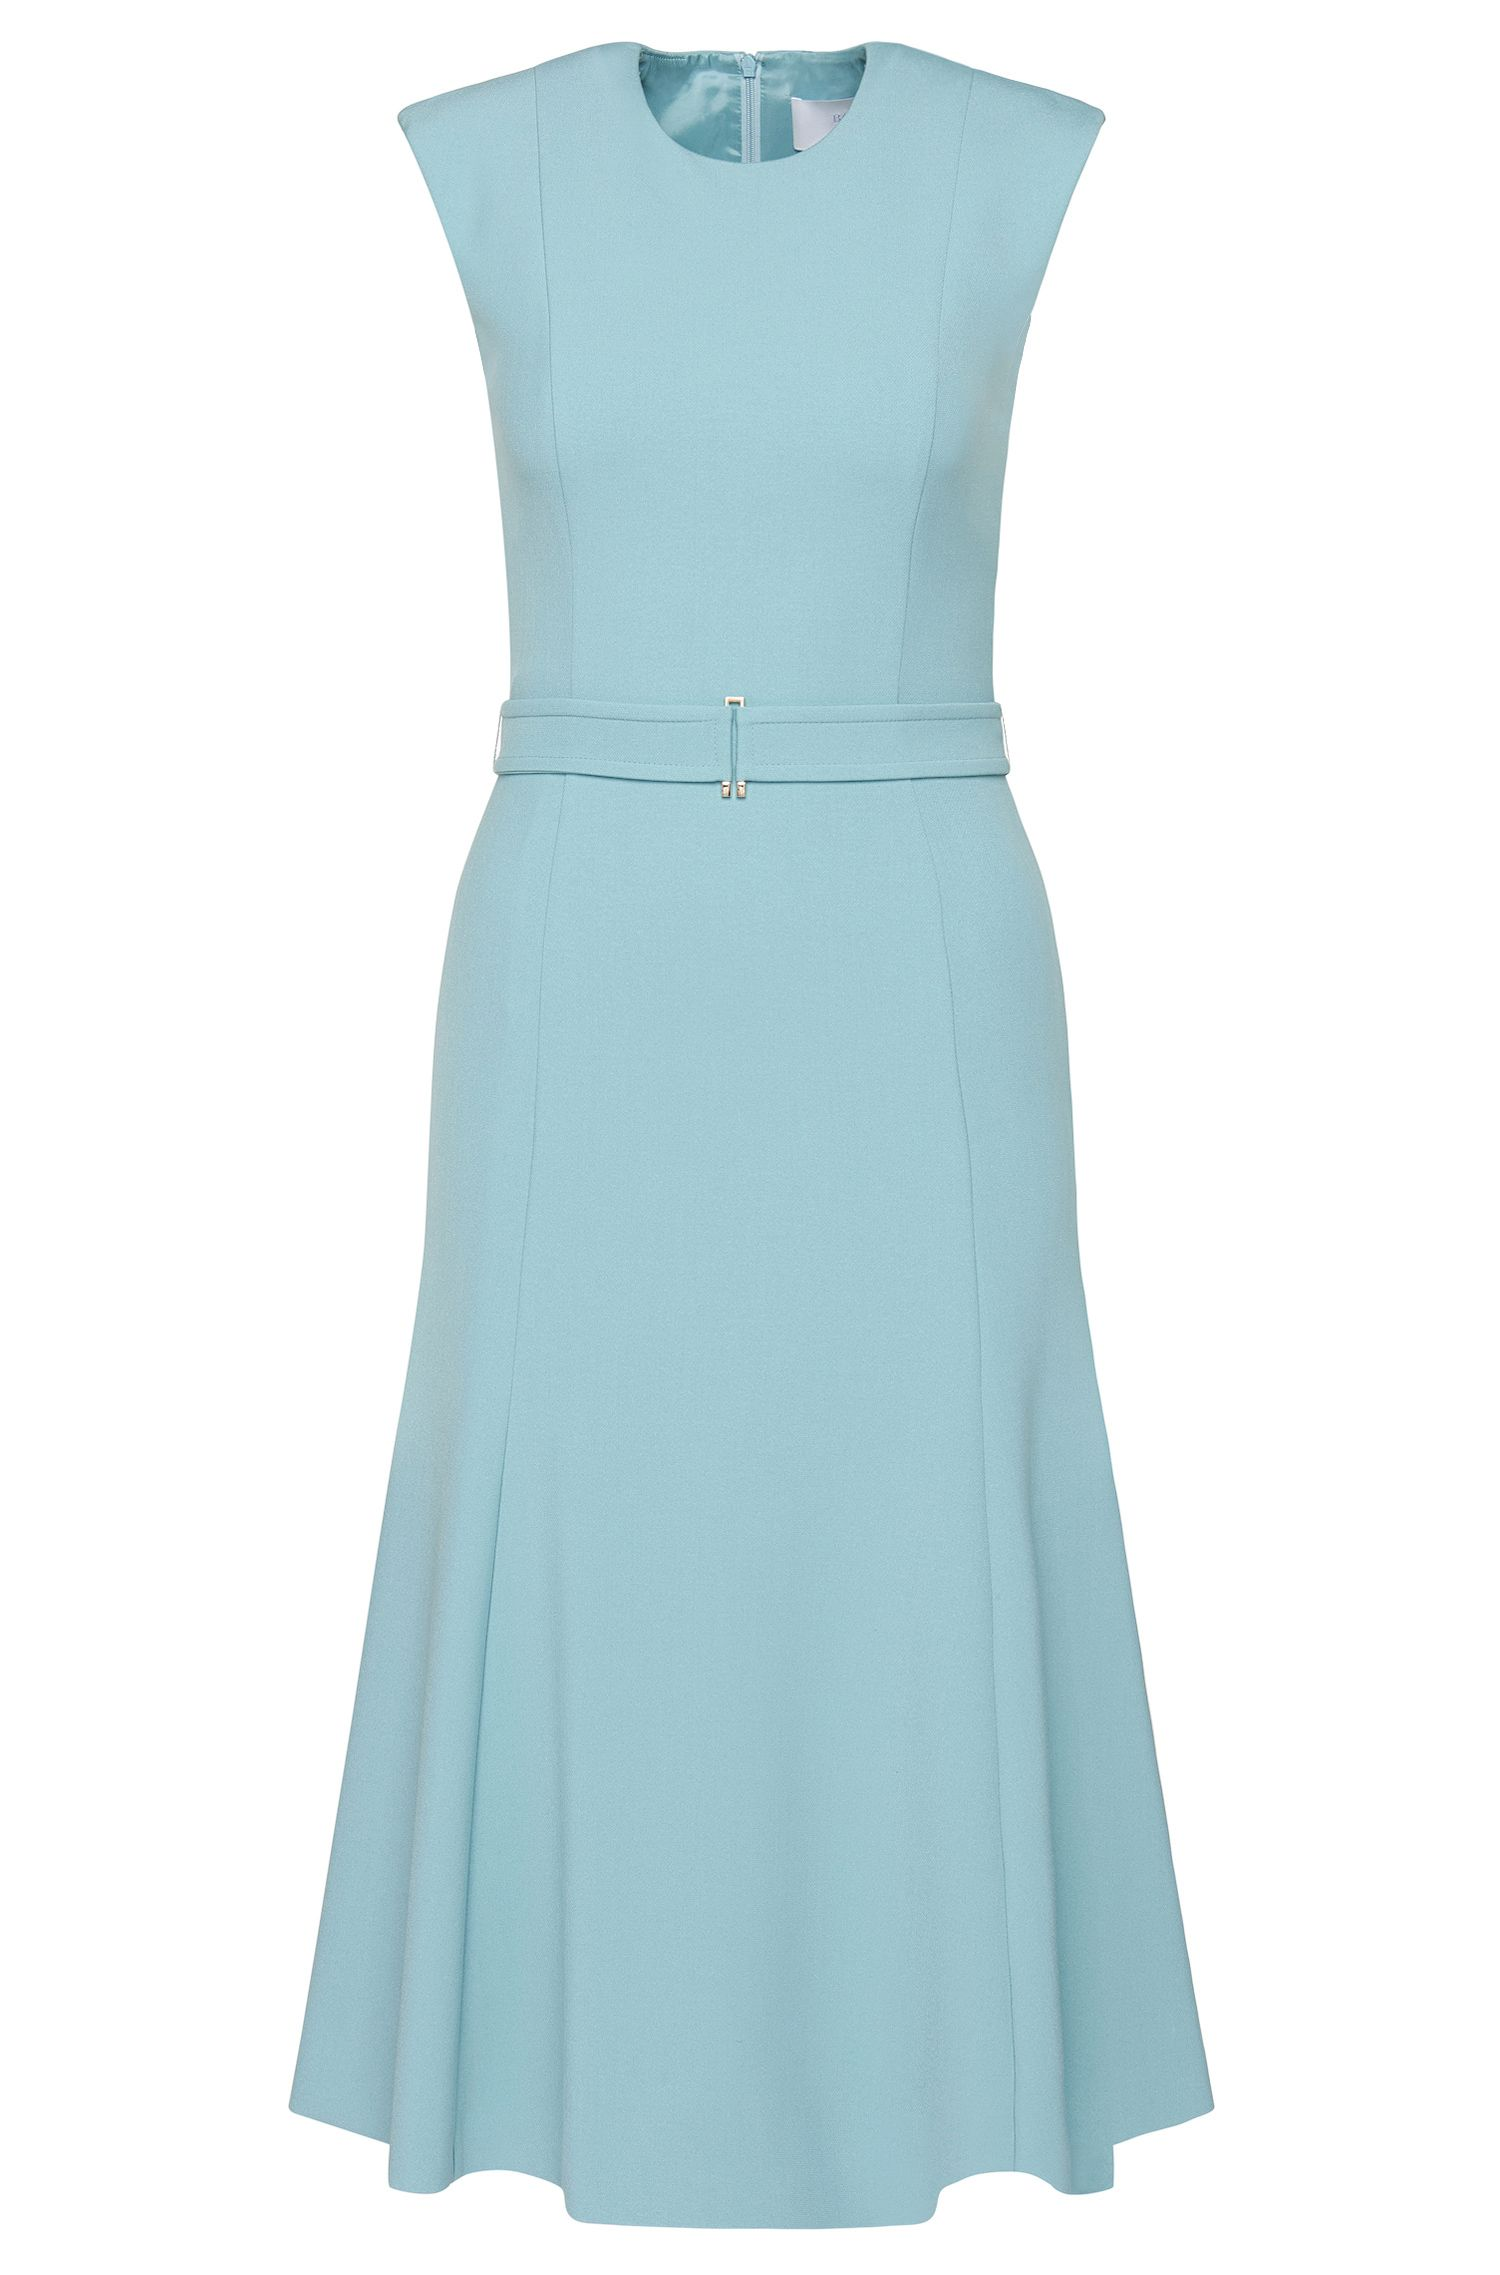 'Deletti' | Stretch Cotton Blend A-Line Belted Dress